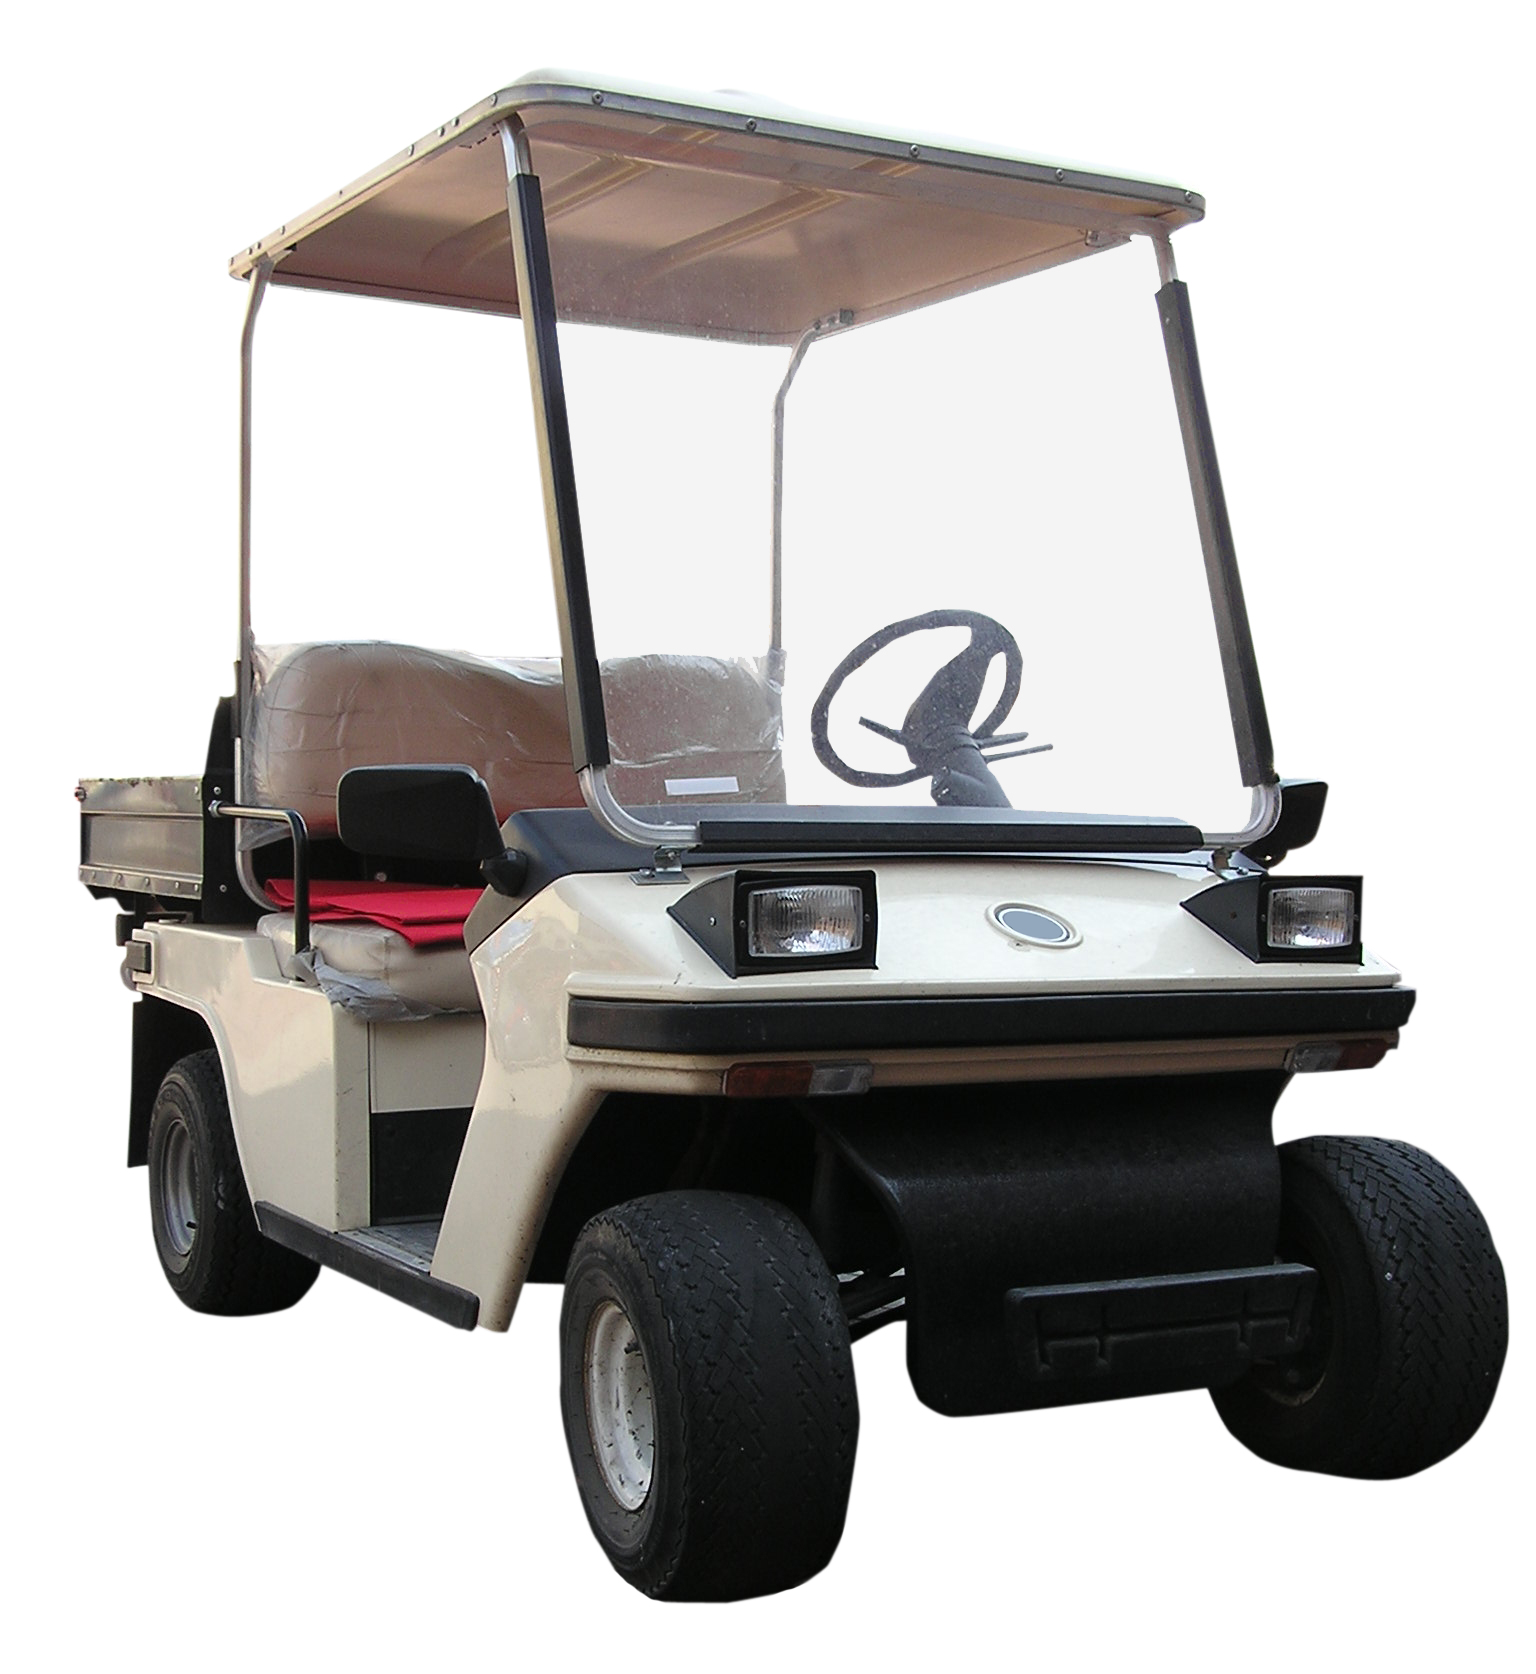 wiring diagram melex golfcart wiring diagram and schematic melex electric golf cart keywords suggestions